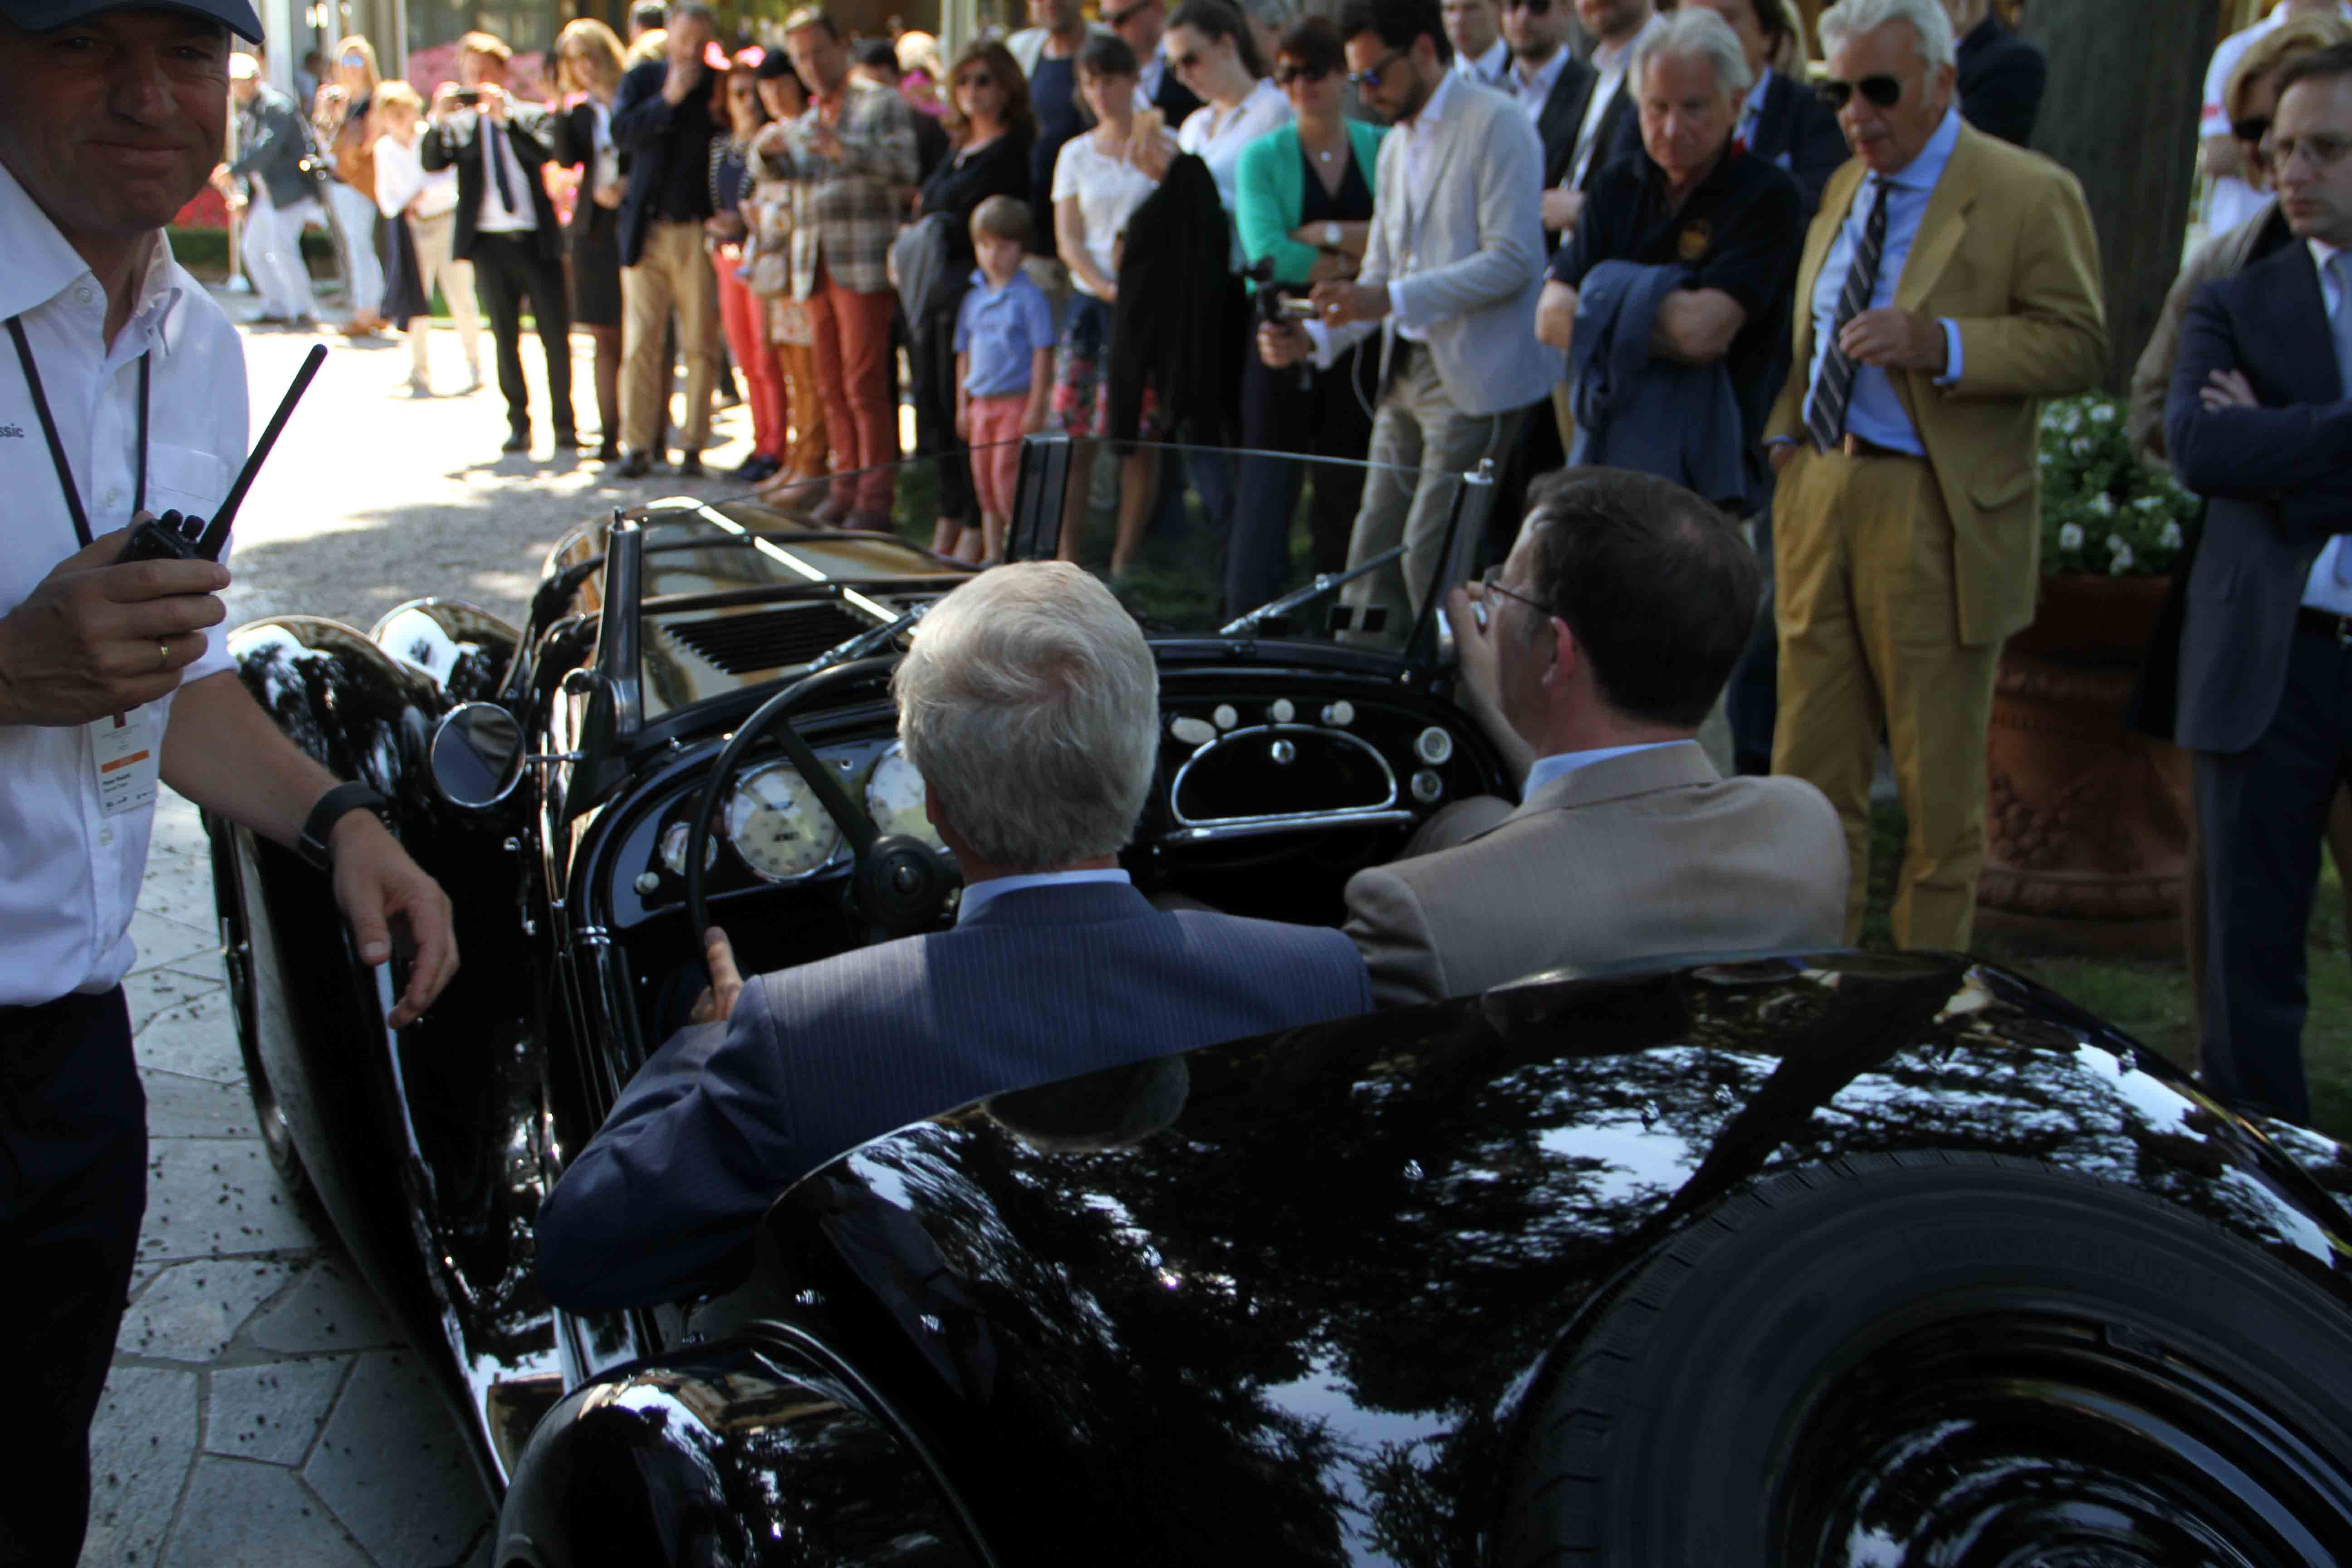 Photo Report: Watch And Car Spotting At The 2016 Concorso d'Eleganza Villa d'Este With A. Lange & Söhne Photo Report: Watch And Car Spotting At The 2016 Concorso d'Eleganza Villa d'Este With A. Lange & Söhne IMG 5402